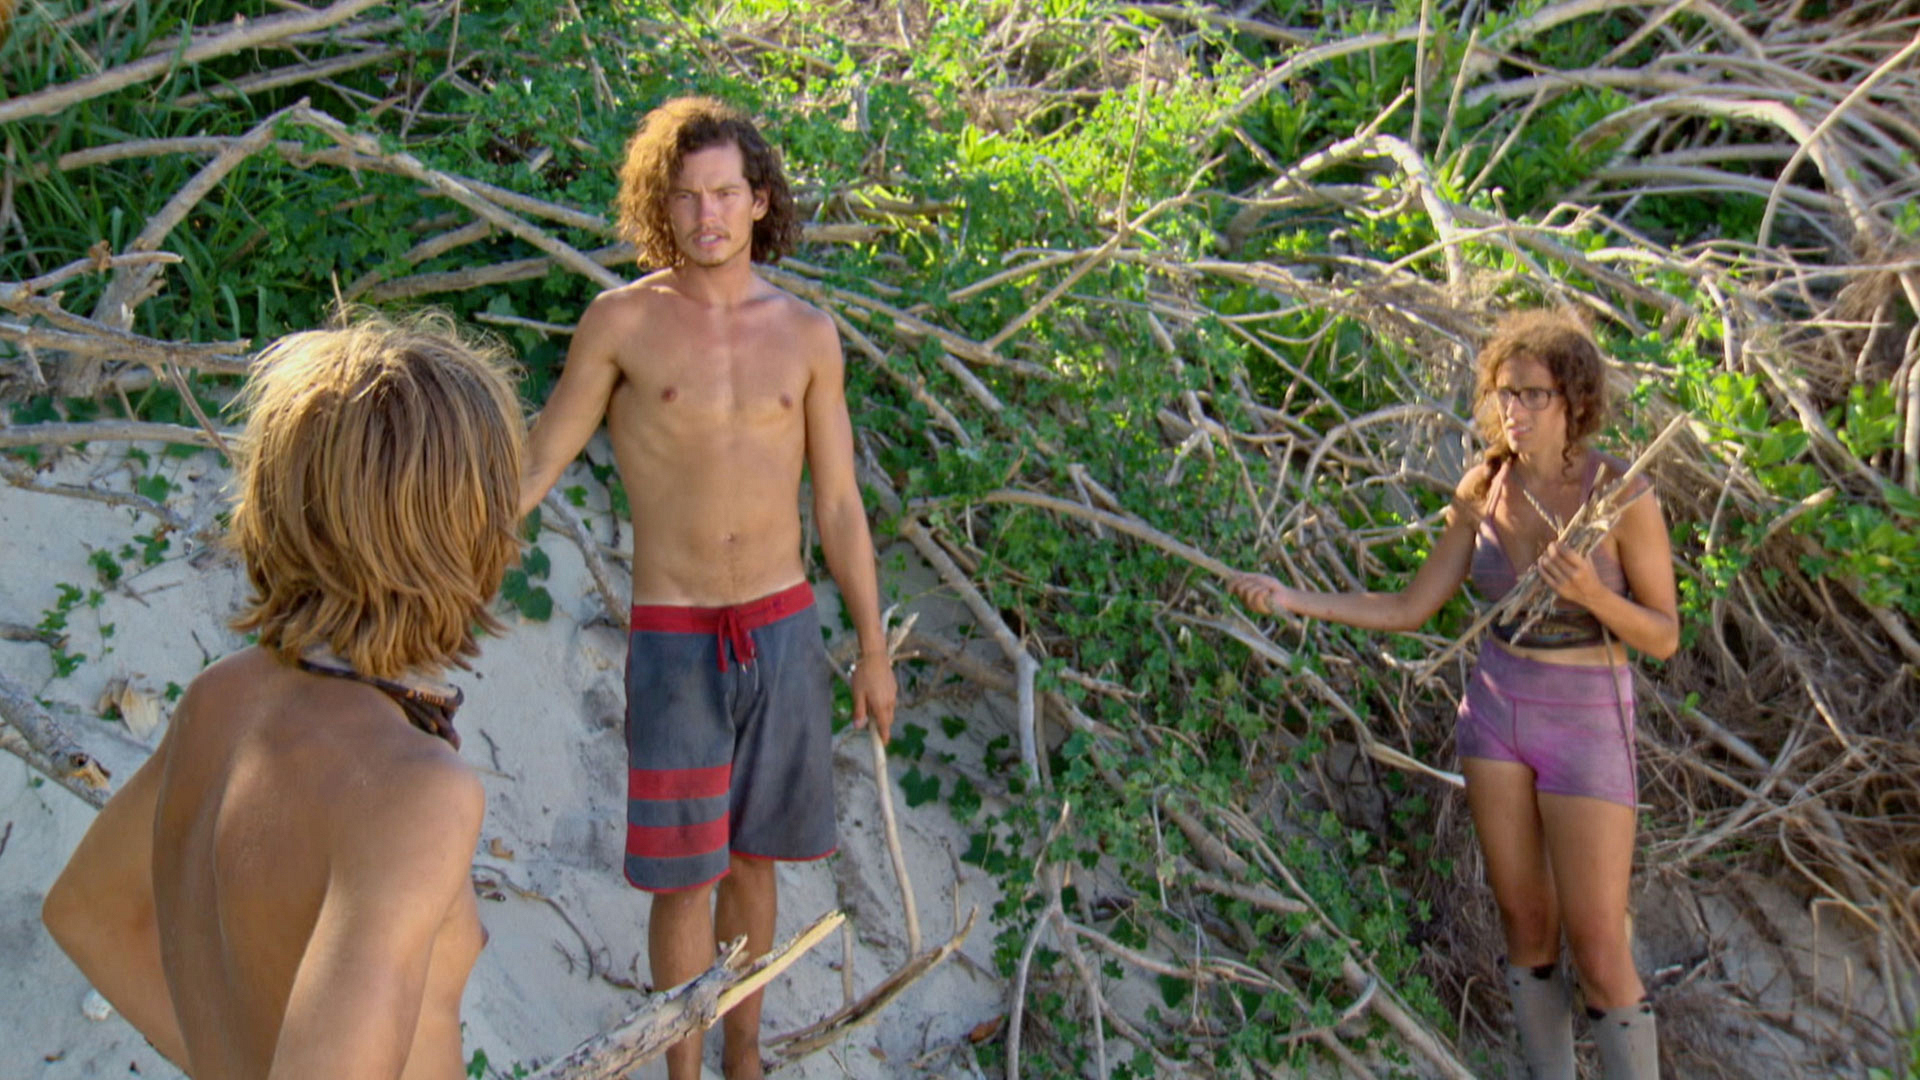 Will, Jay, and Hannah chat while they gather branches along the beach.